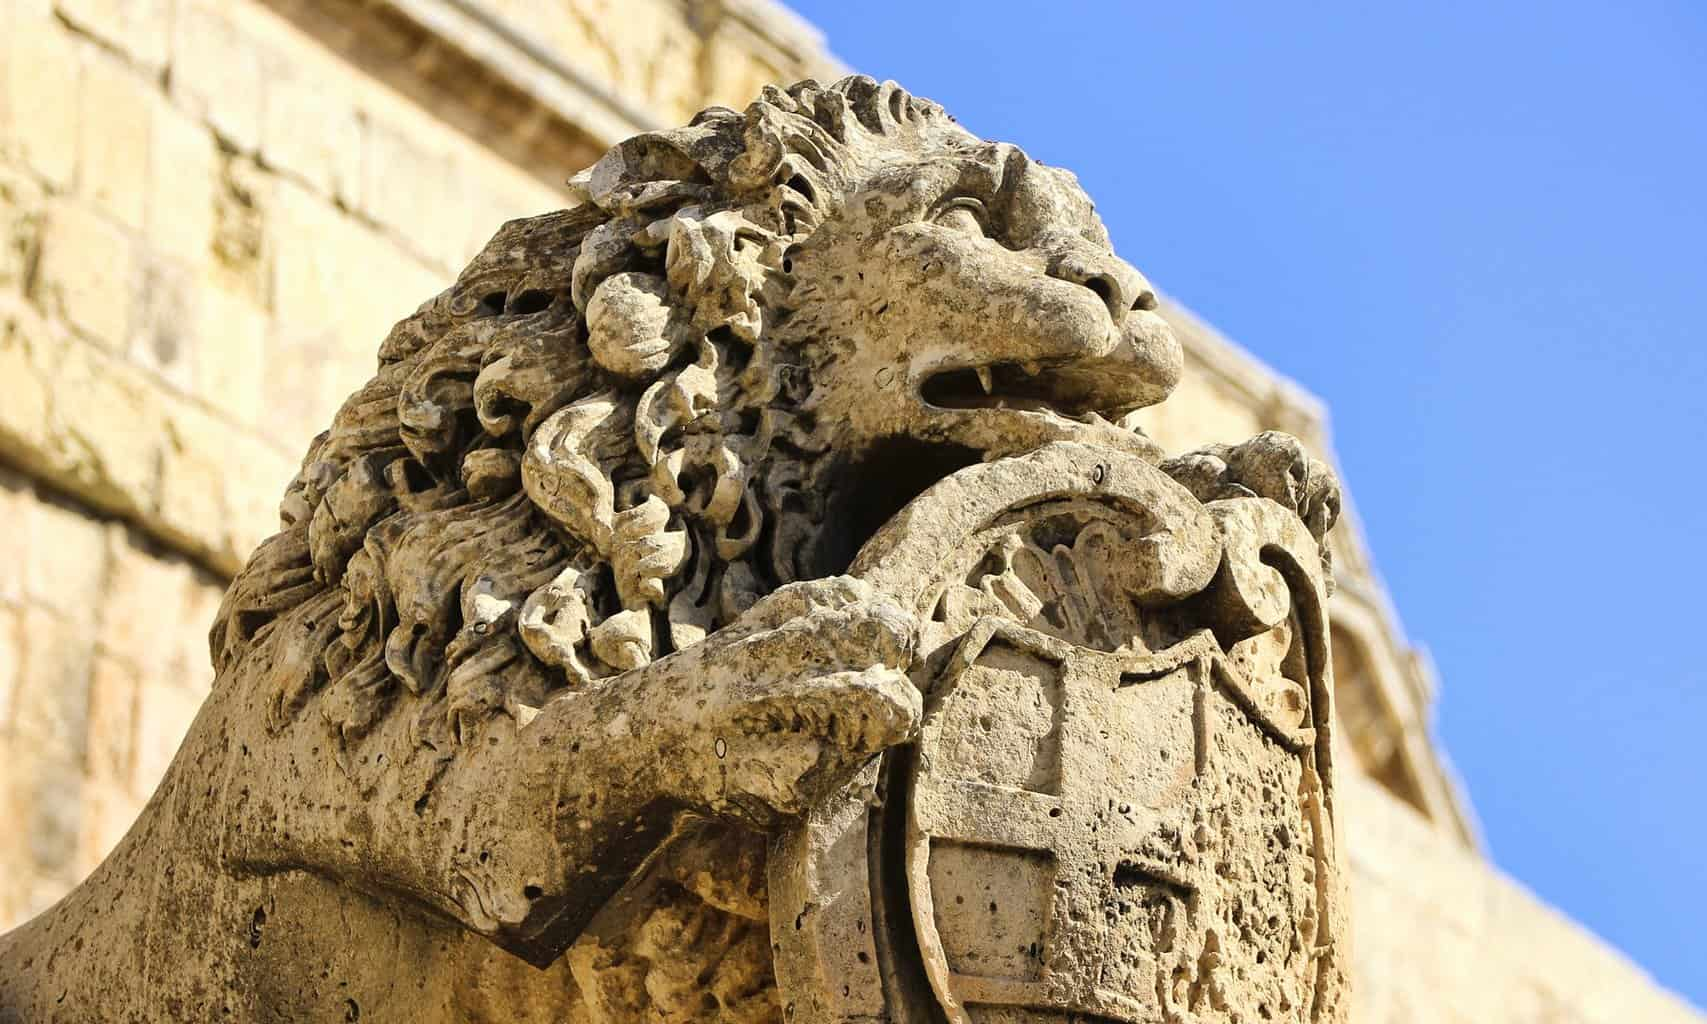 A sandstone carving on the ramparts of Mdina, Malta.